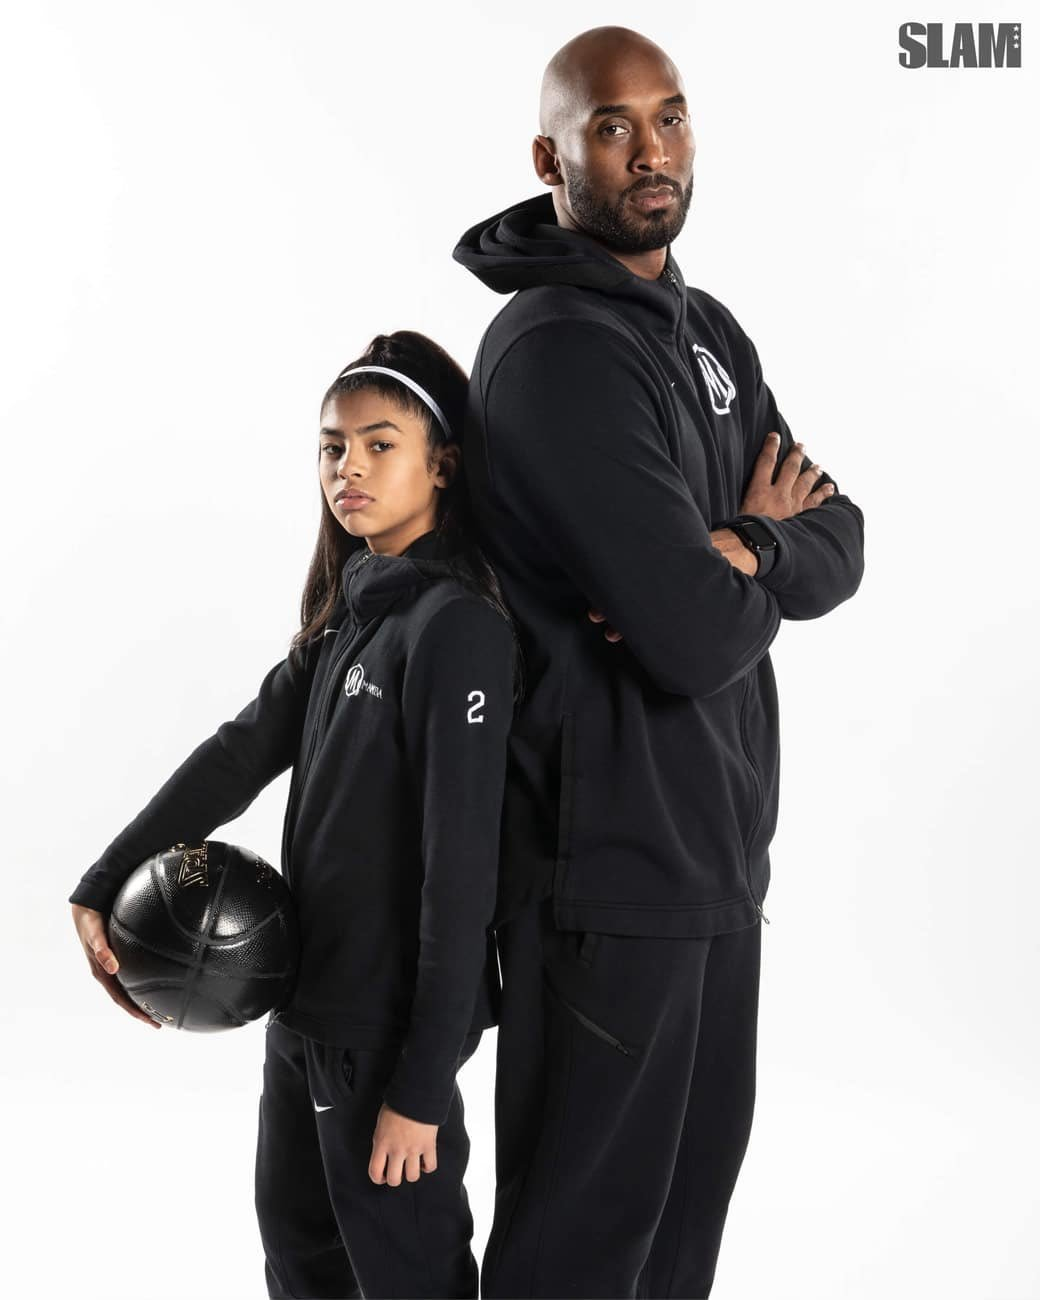 Kobe Bryant's daughter Gianni Bryant also died in Helicopter crash 4